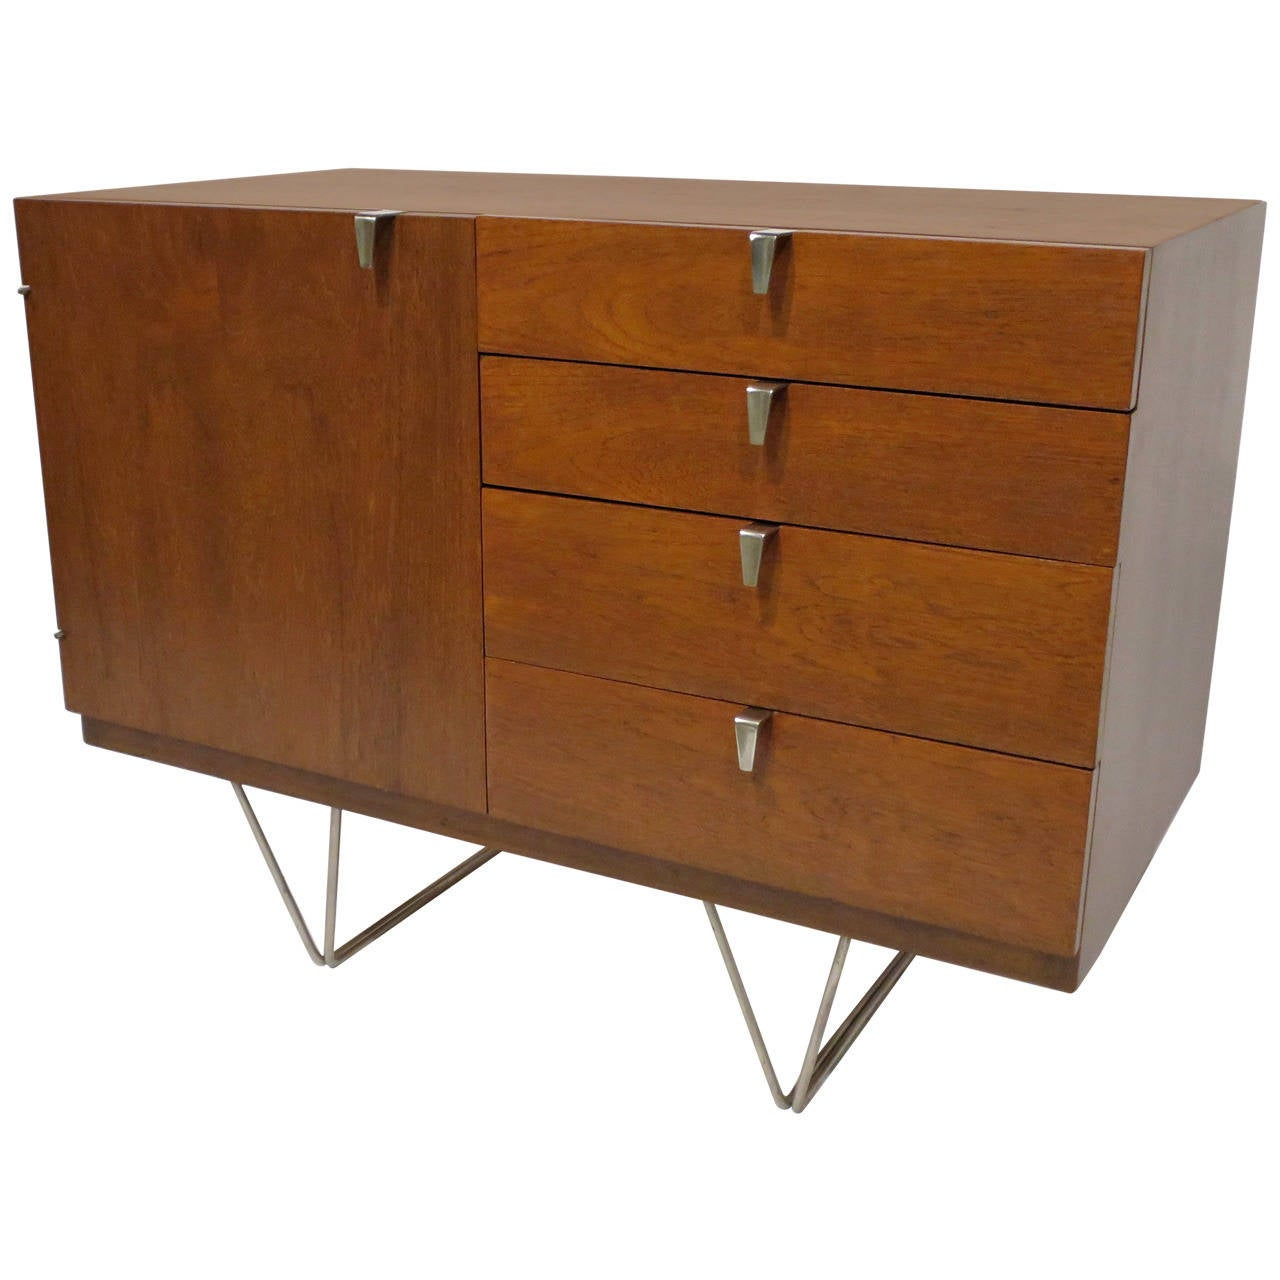 Mid century furniture san diego ca ask home design for Furniture 92101